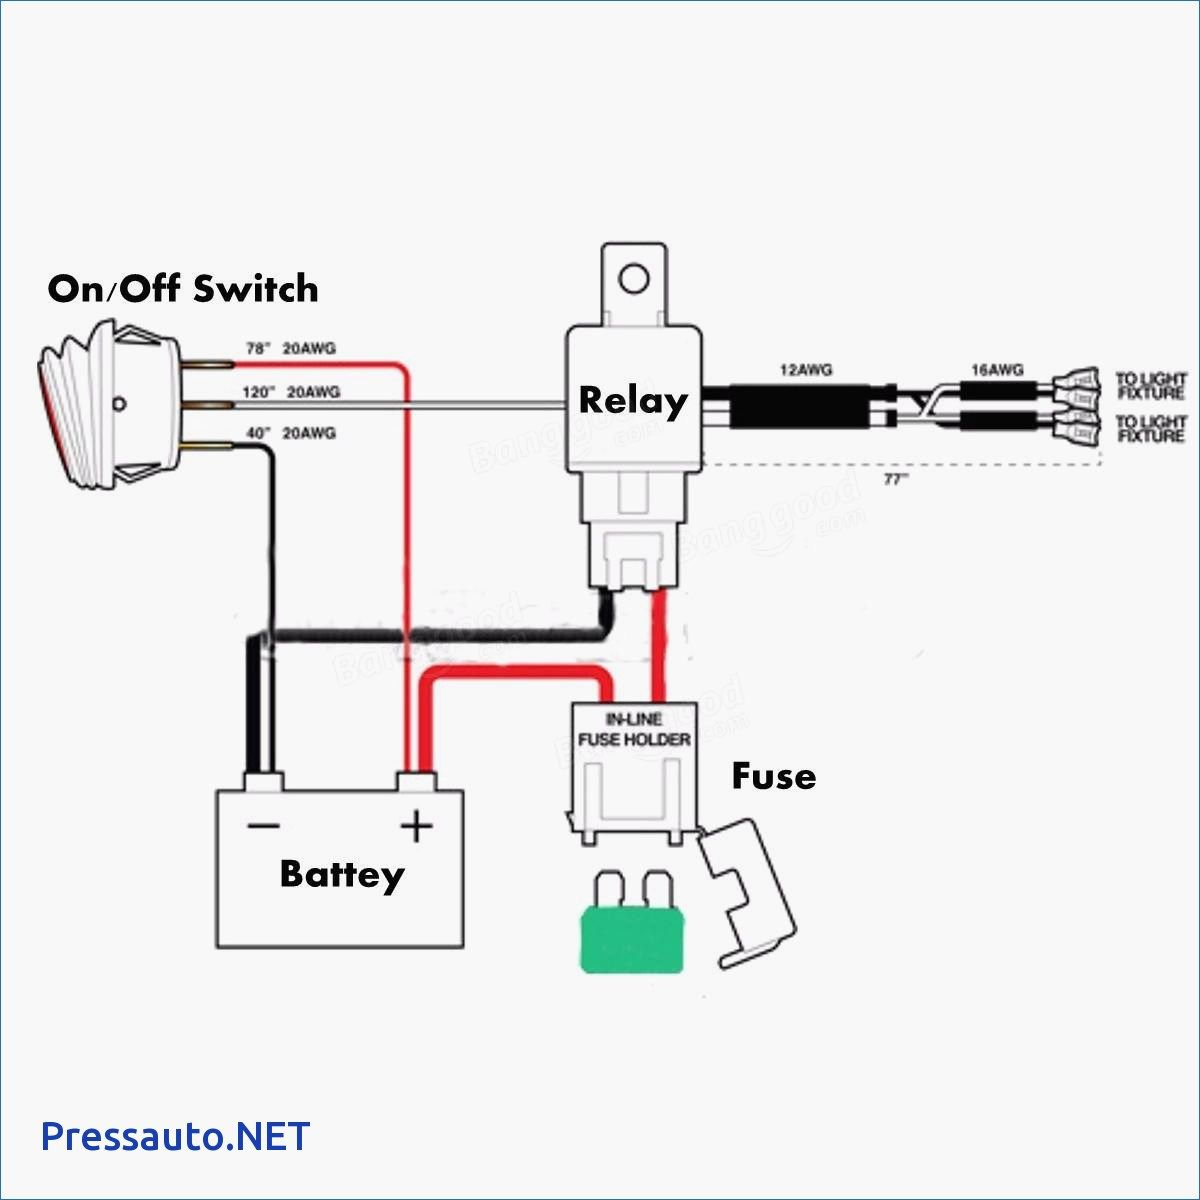 21+ On off on toggle switch wiring diagram info